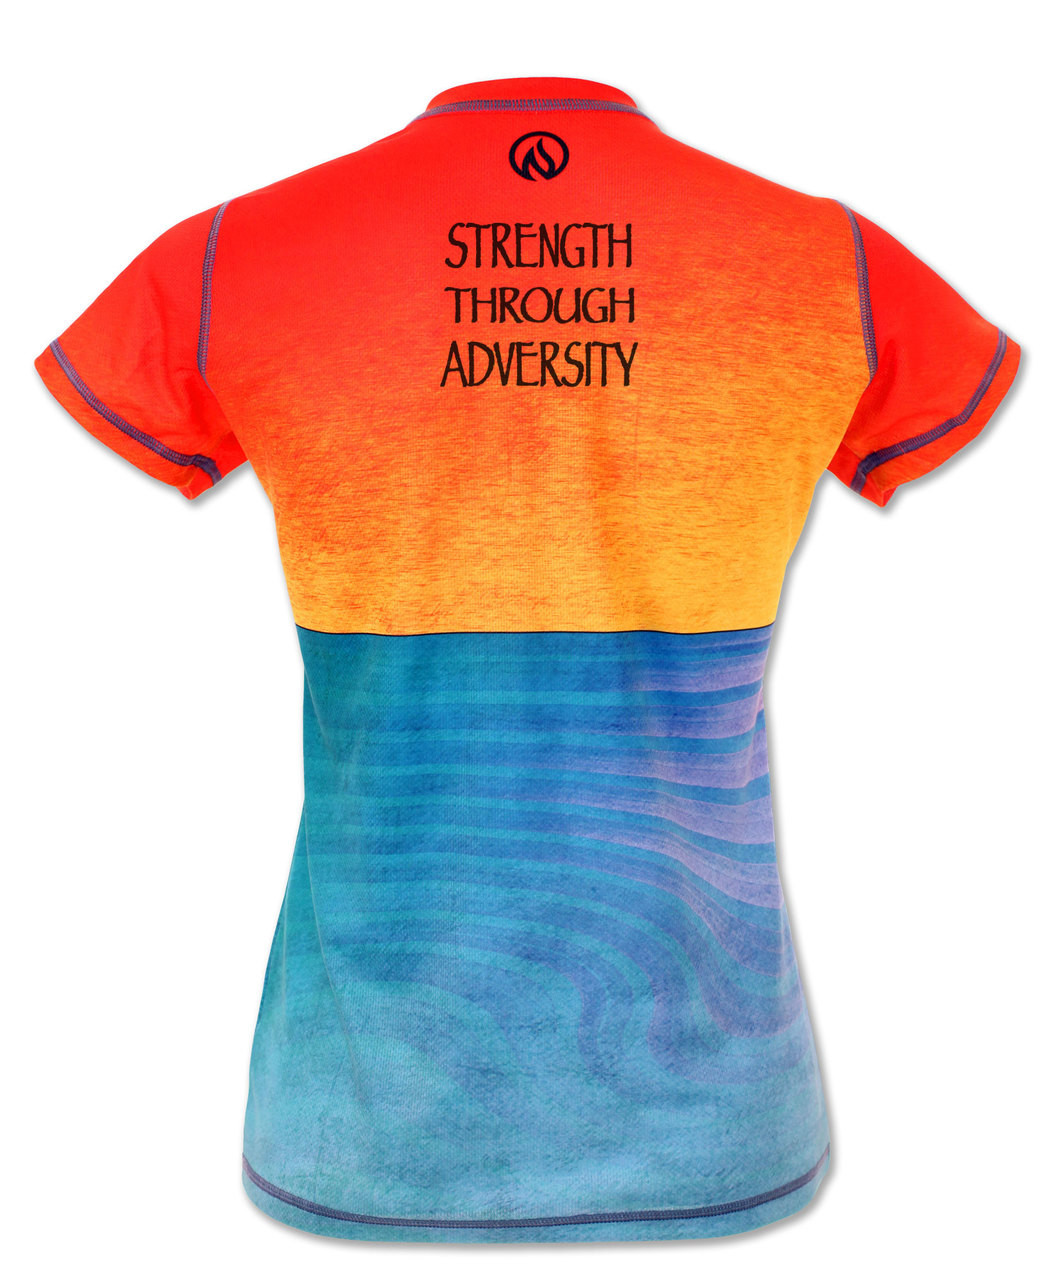 INKnBURN Women's Strength Through Adversity Tech Shirt Back